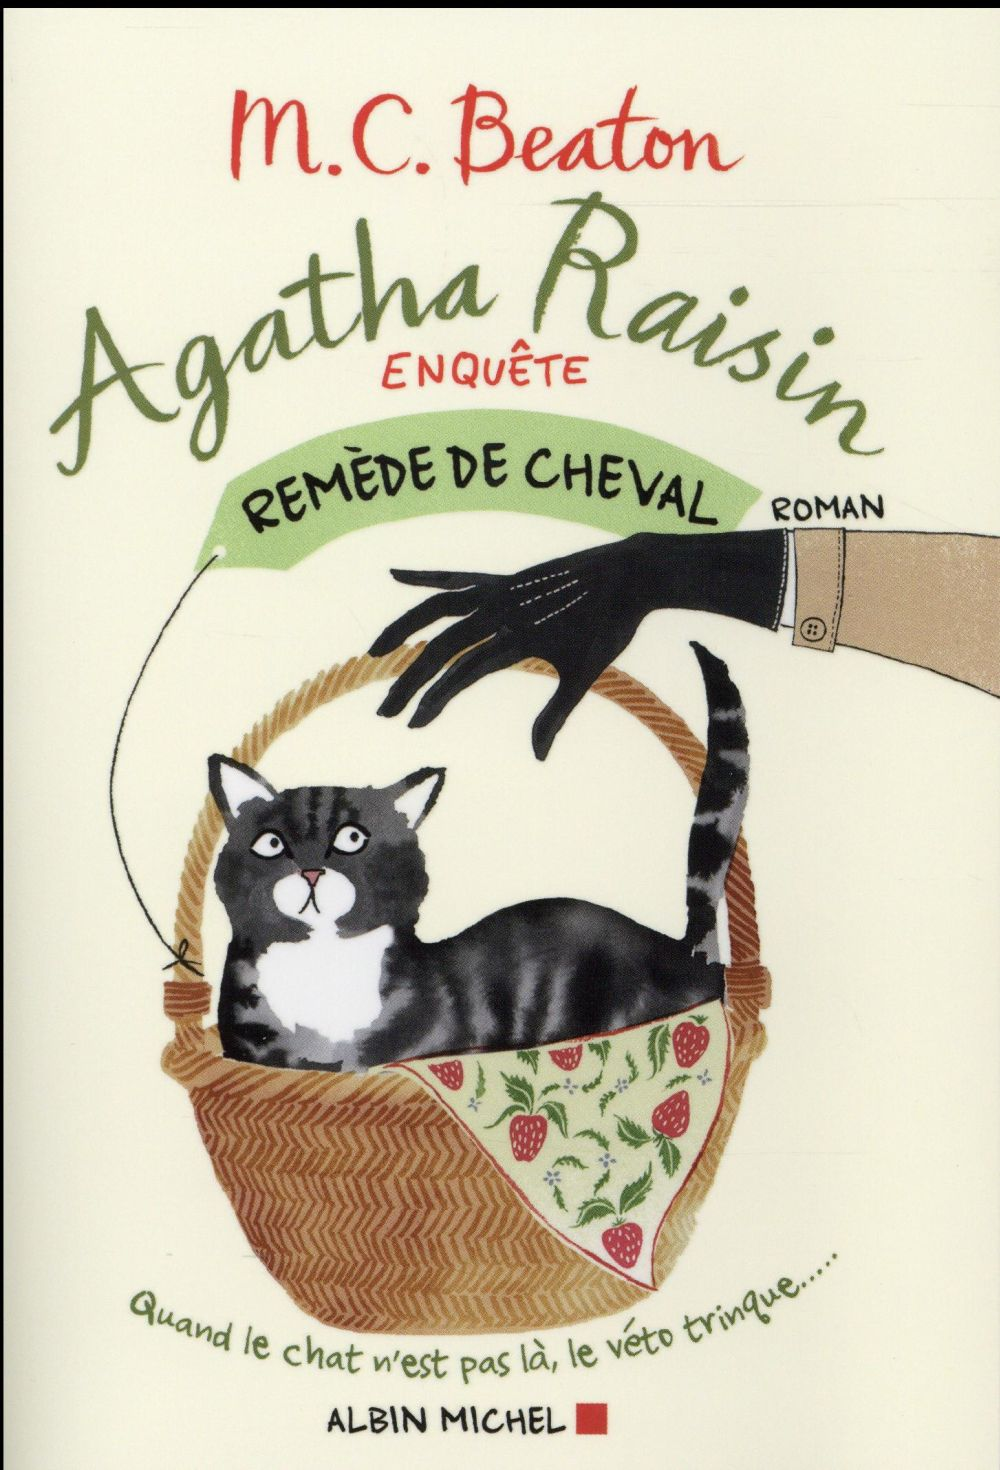 AGATHA RAISIN ENQUETE - REMEDE DE CHEVAL